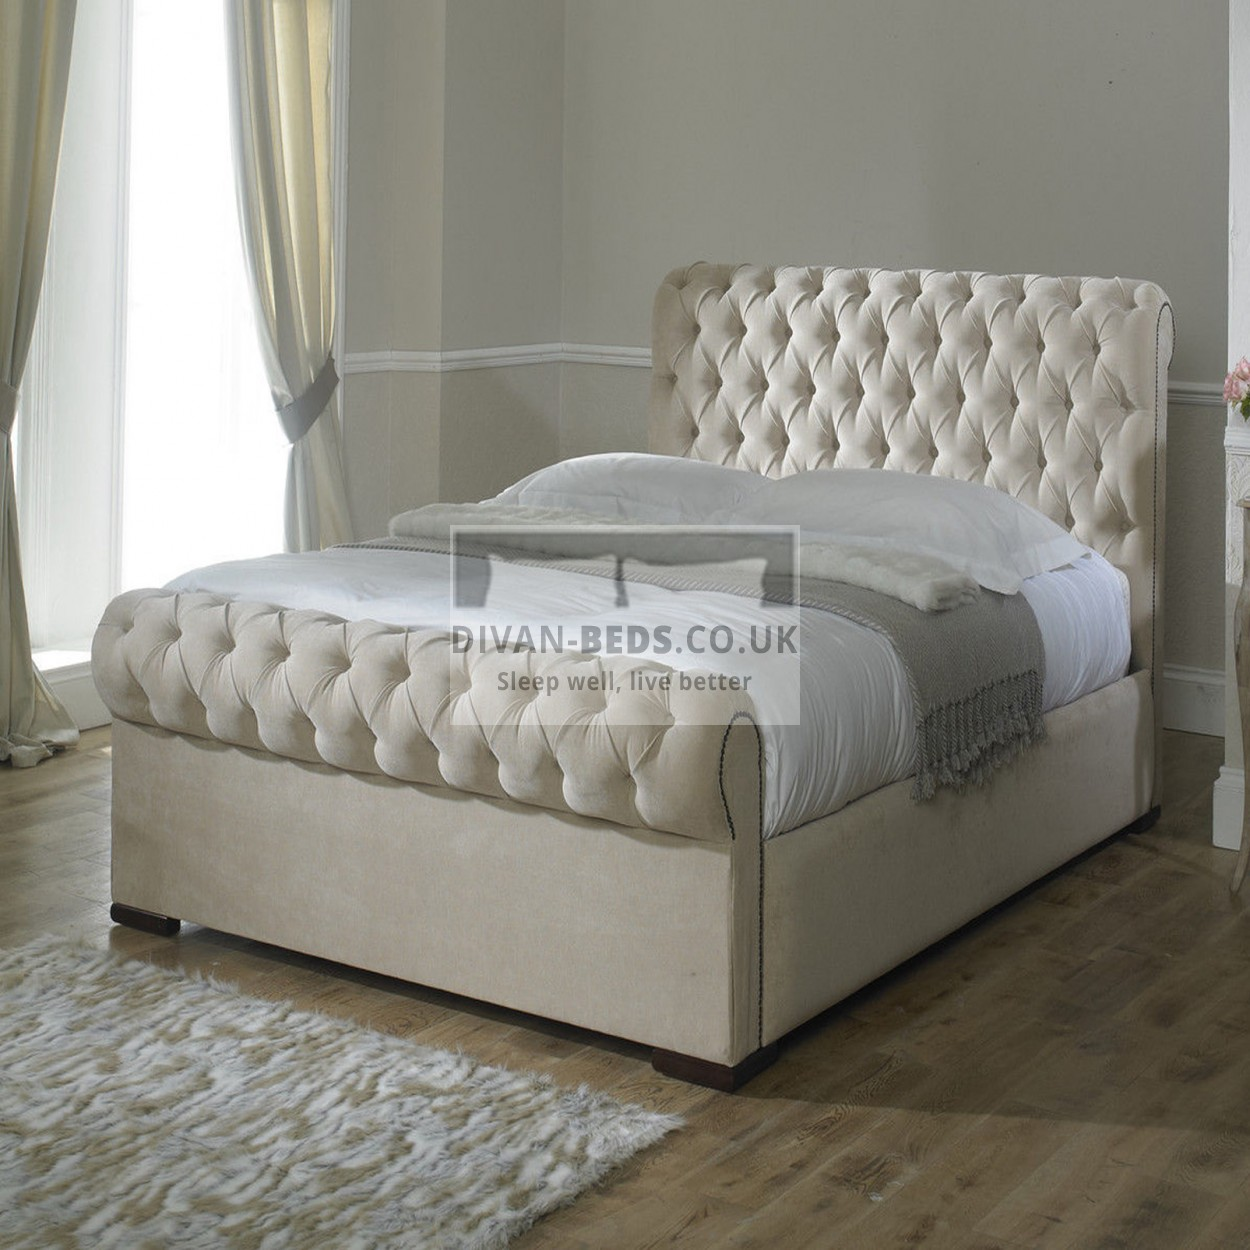 Rosaline Luxury Fabric Upholstered Bed Frame Guaranteed